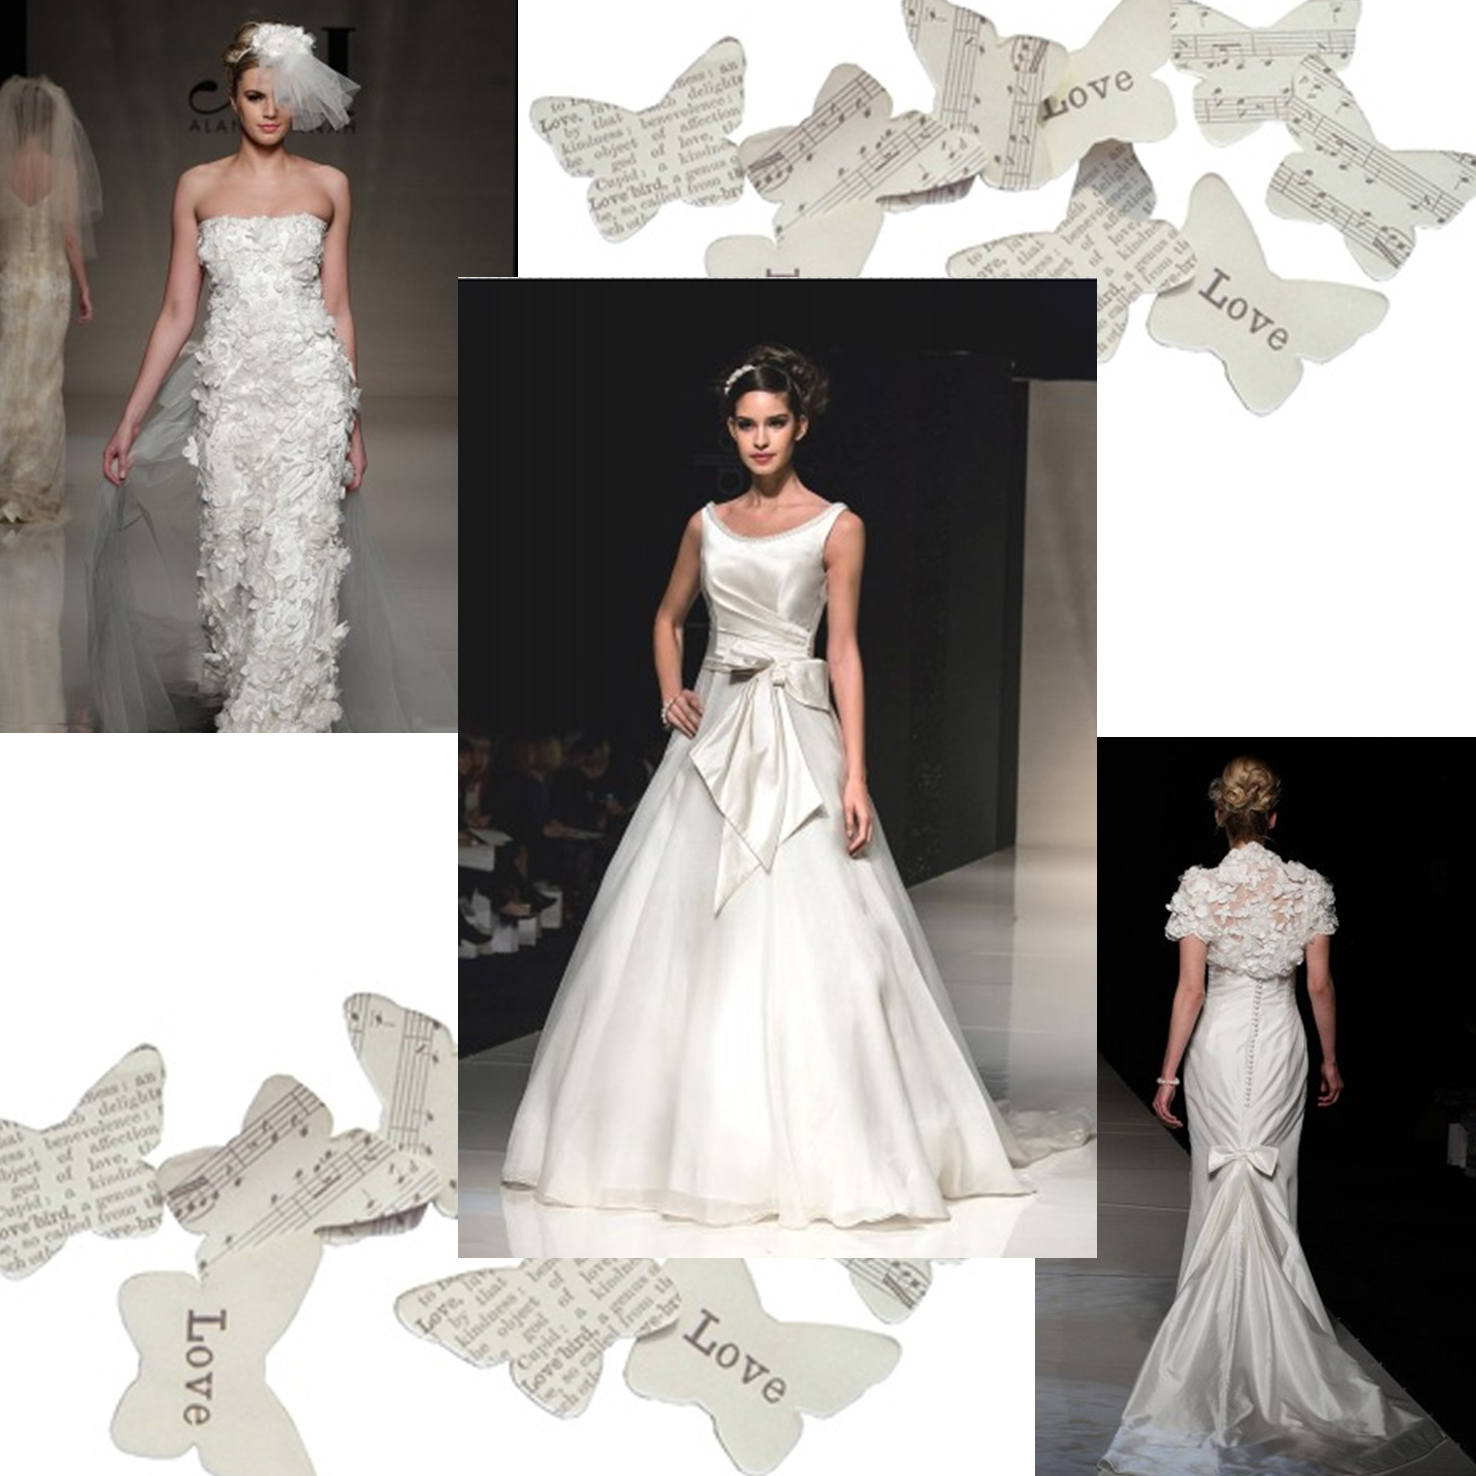 Bride De Force: Wedding Theme A-Z: B is for Butterflies and Bows